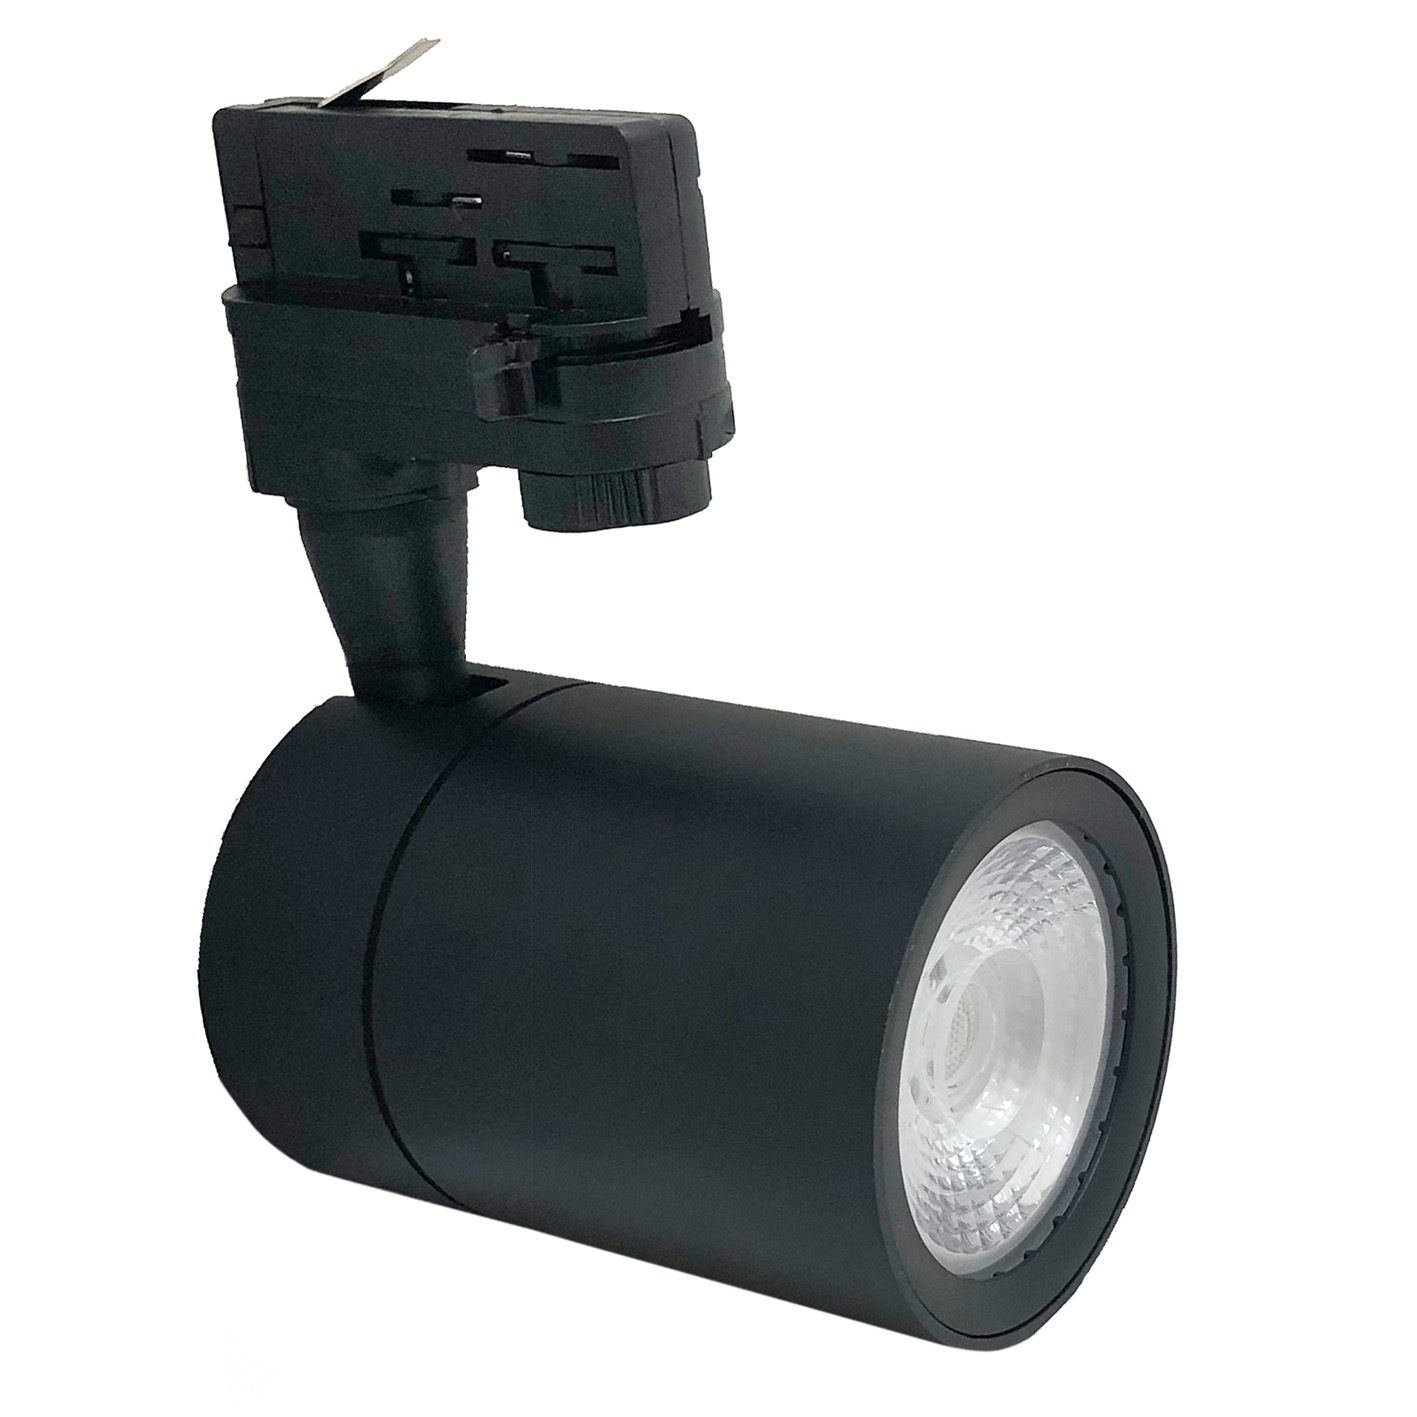 Projecteur à LED rail Noir, 30W en trois phases phare super compact COB-FB-21-30W